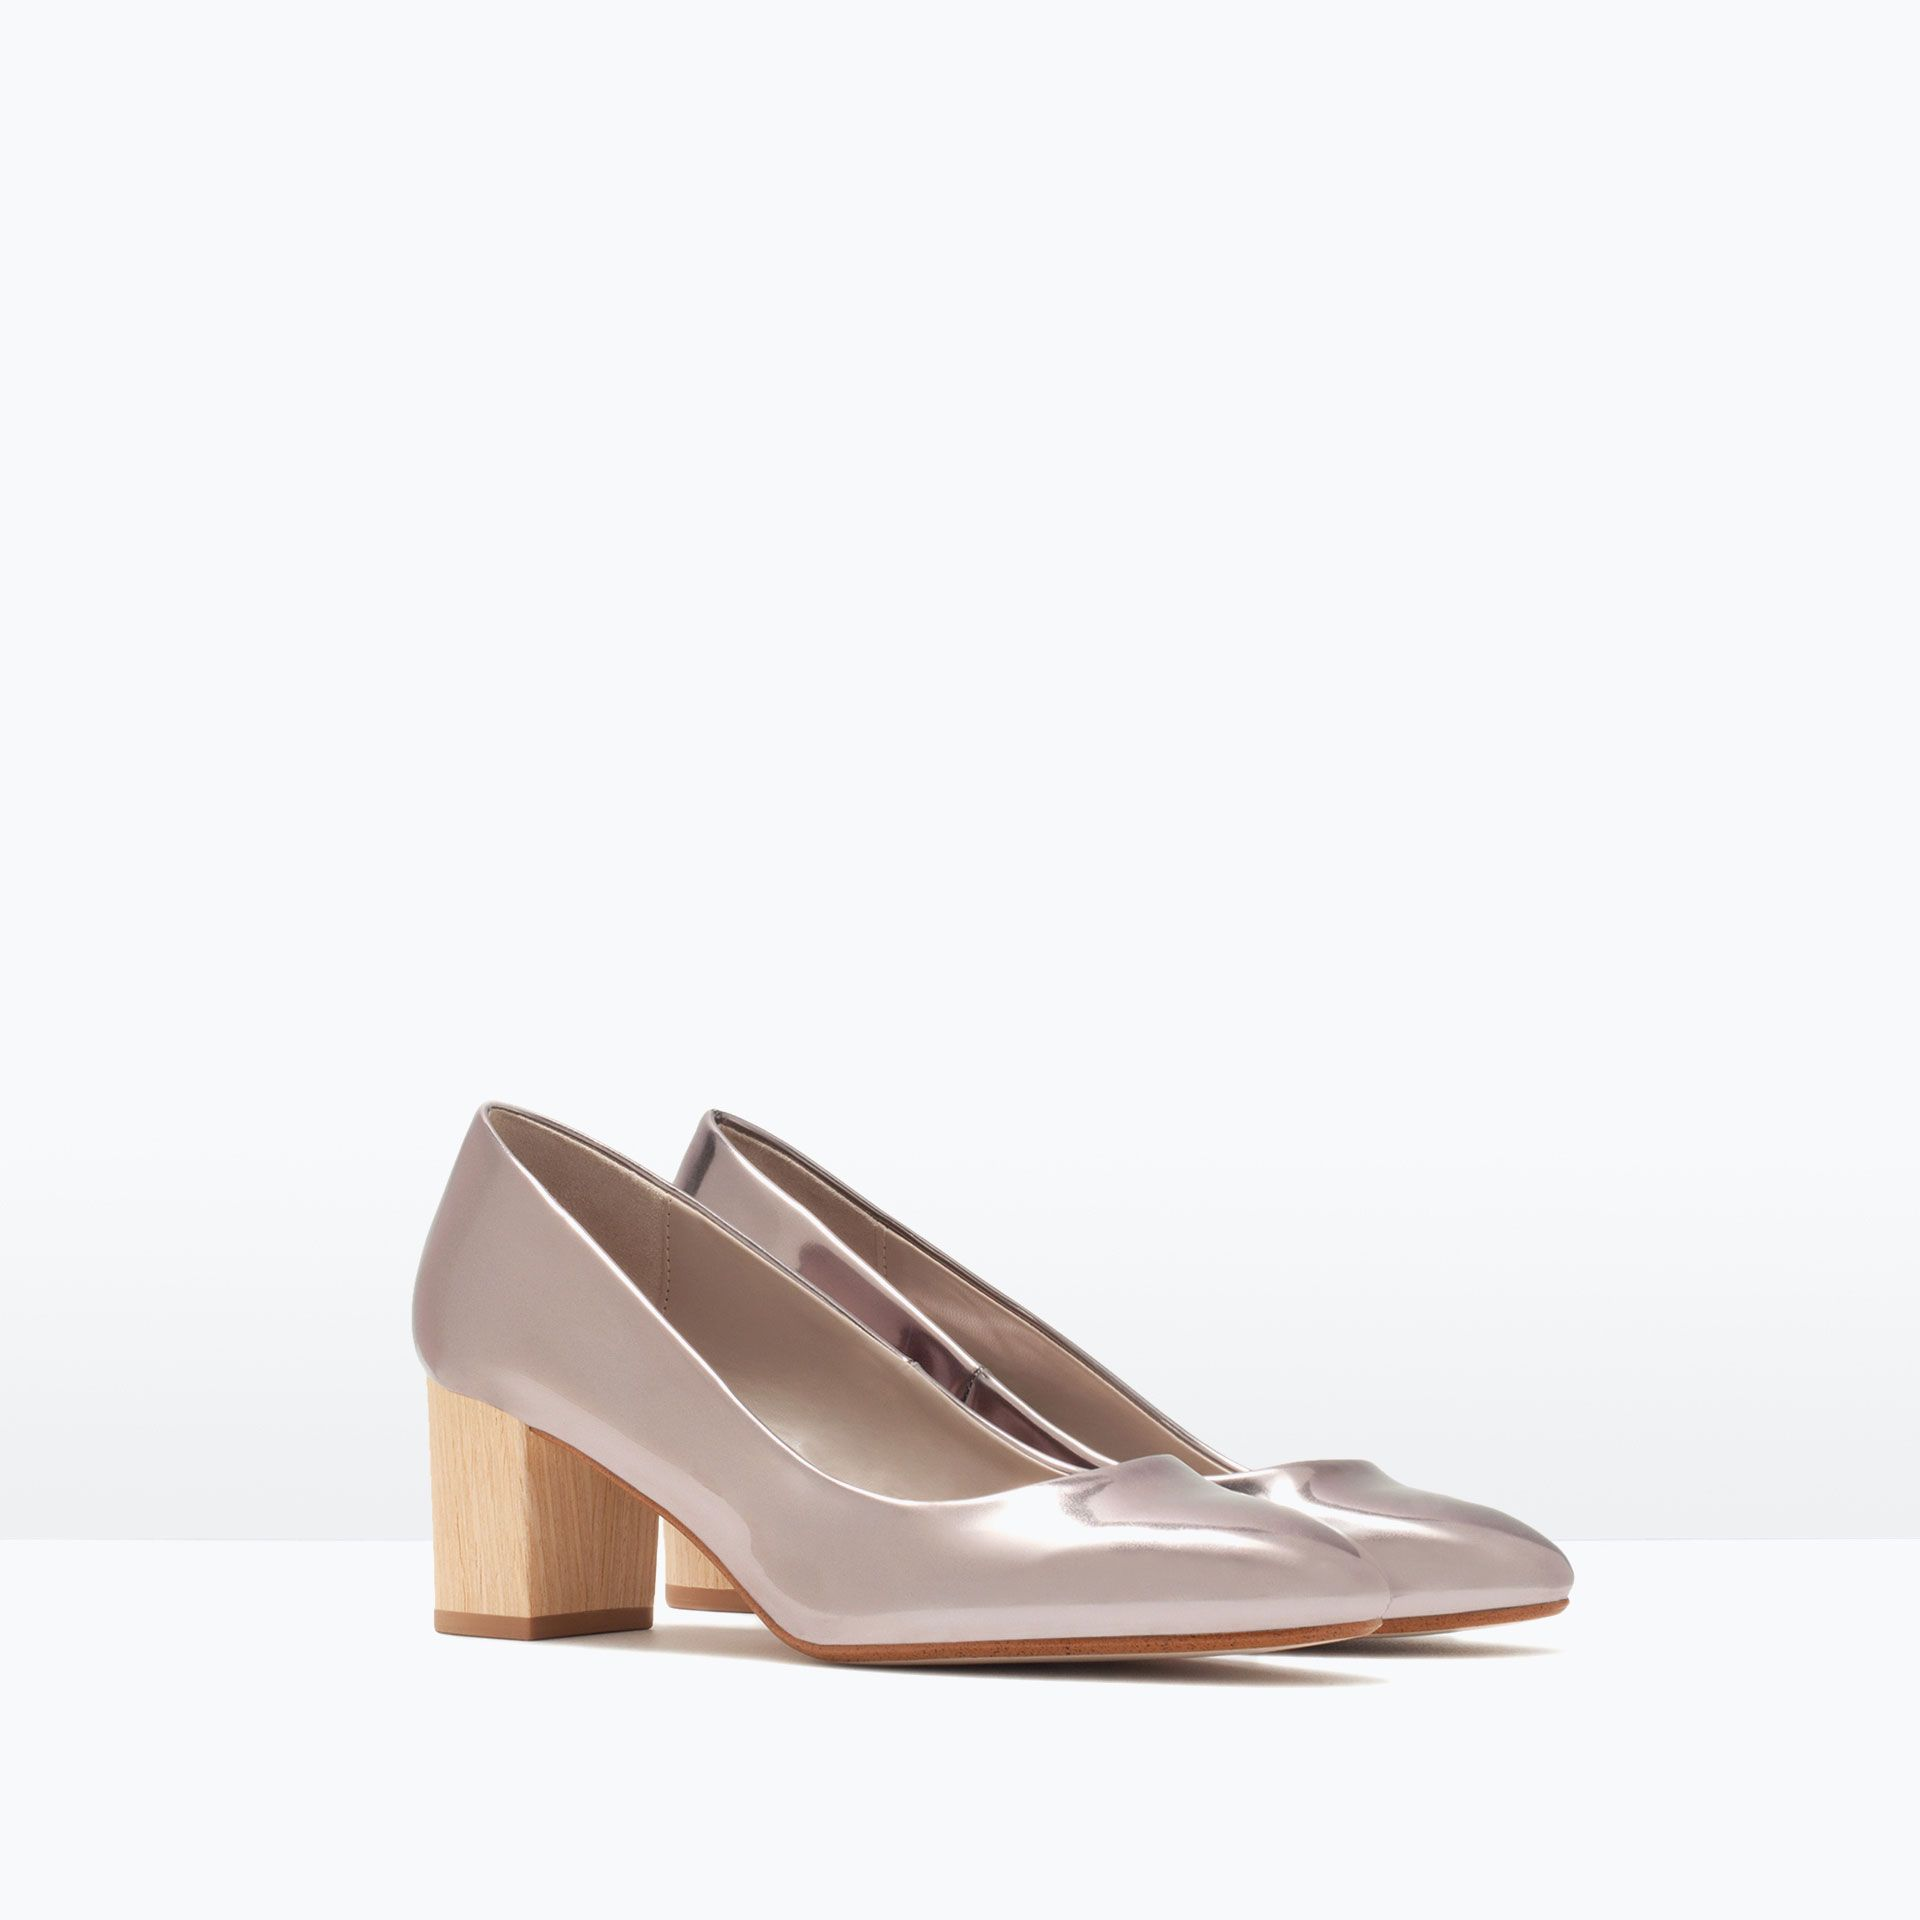 ZARA - SHOES & BAGS - SHINY COURT SHOES